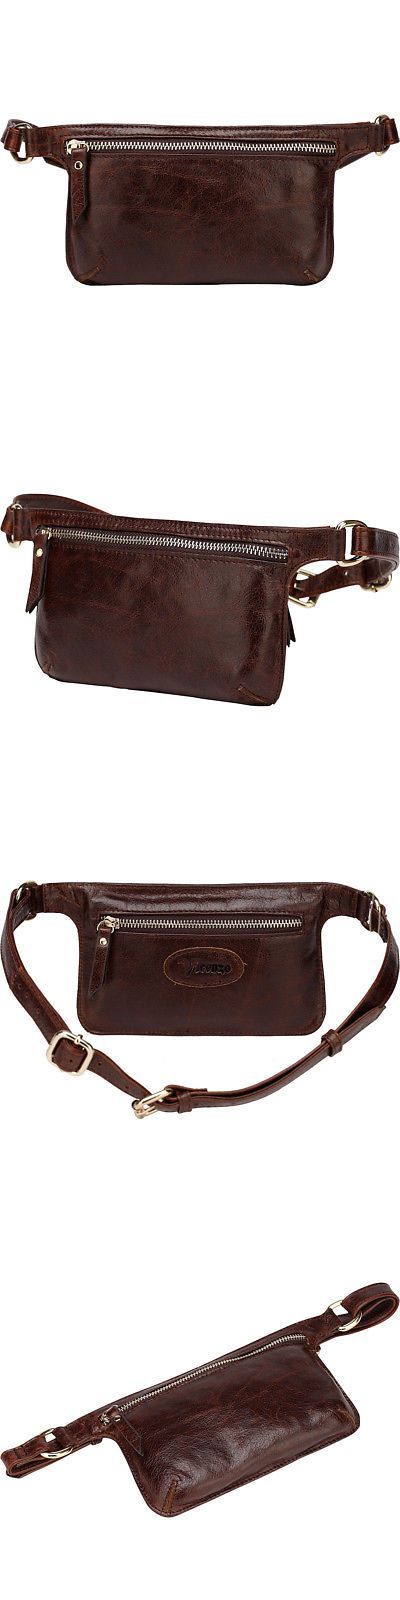 Fanny Waist Packs 169298: Vicenzo Leather Mibel Distressed Leather Waist Waist Pack New -> BUY IT NOW ONLY: $64.99 on eBay!